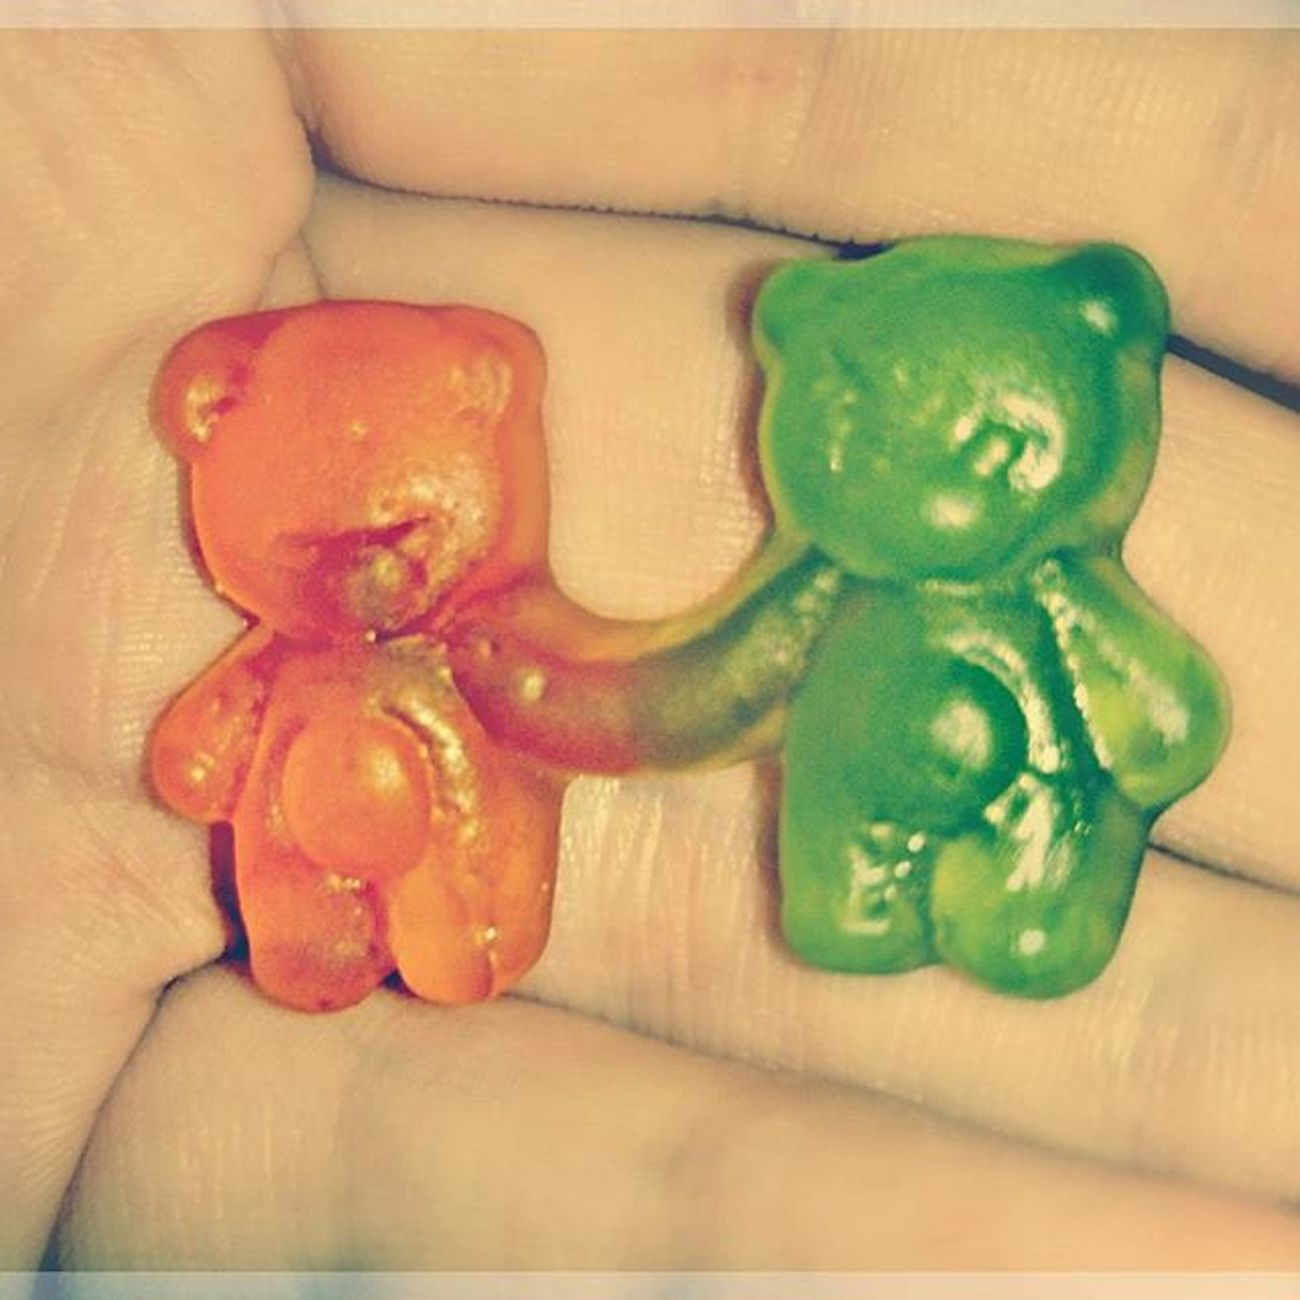 👫❤ Love Sweet Sweetlove Instalove Picoftheday Picture Photography Perfect Together Bear Littlelove Candy Gummybears Sugar Truelove